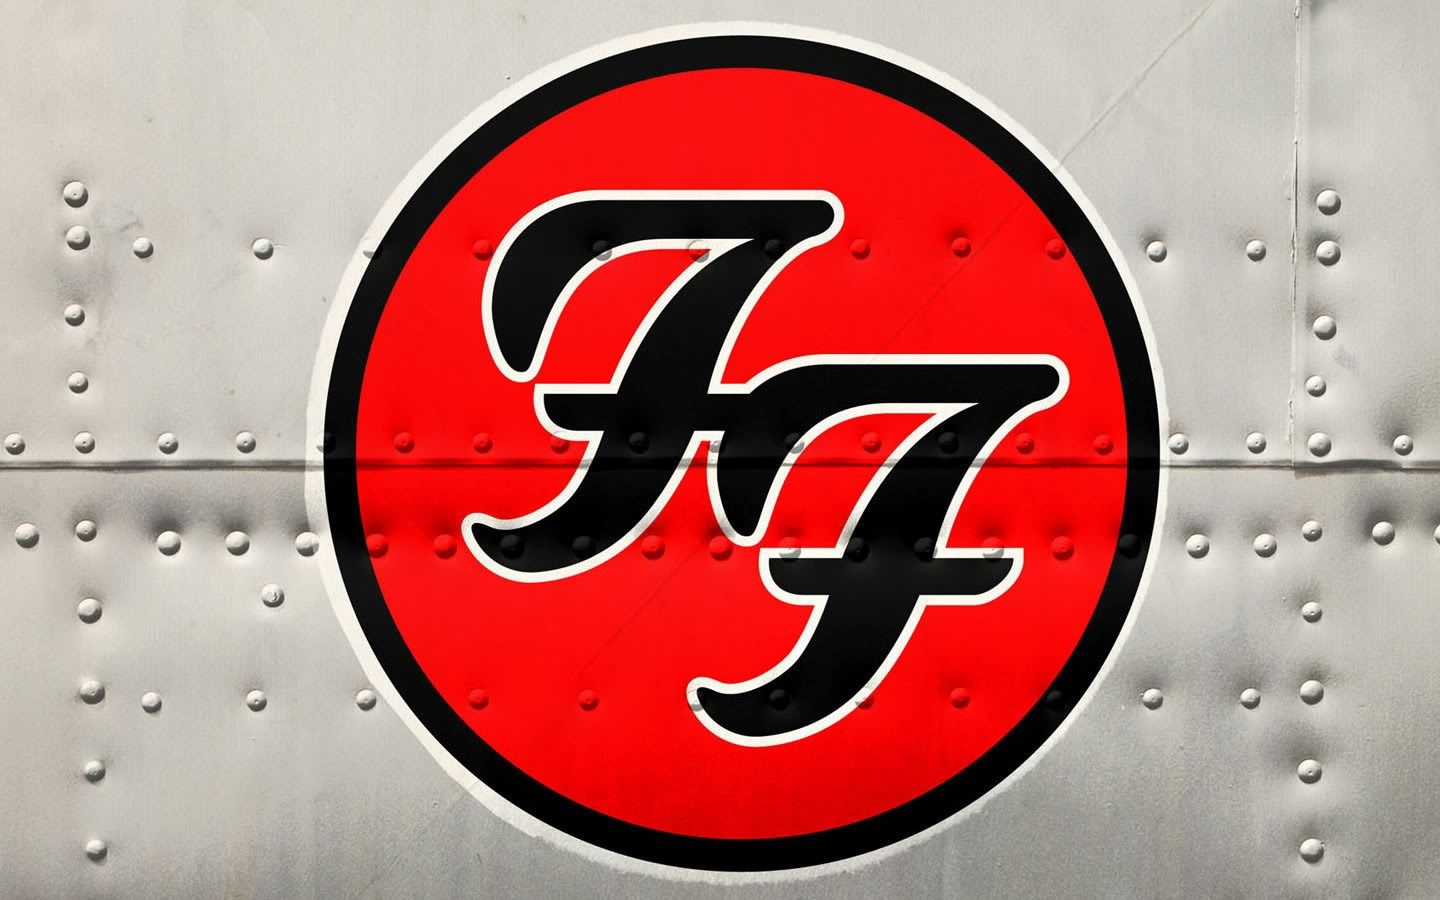 1440x900 Free Desktop Backgrounds For Foo Fighters Likeagod